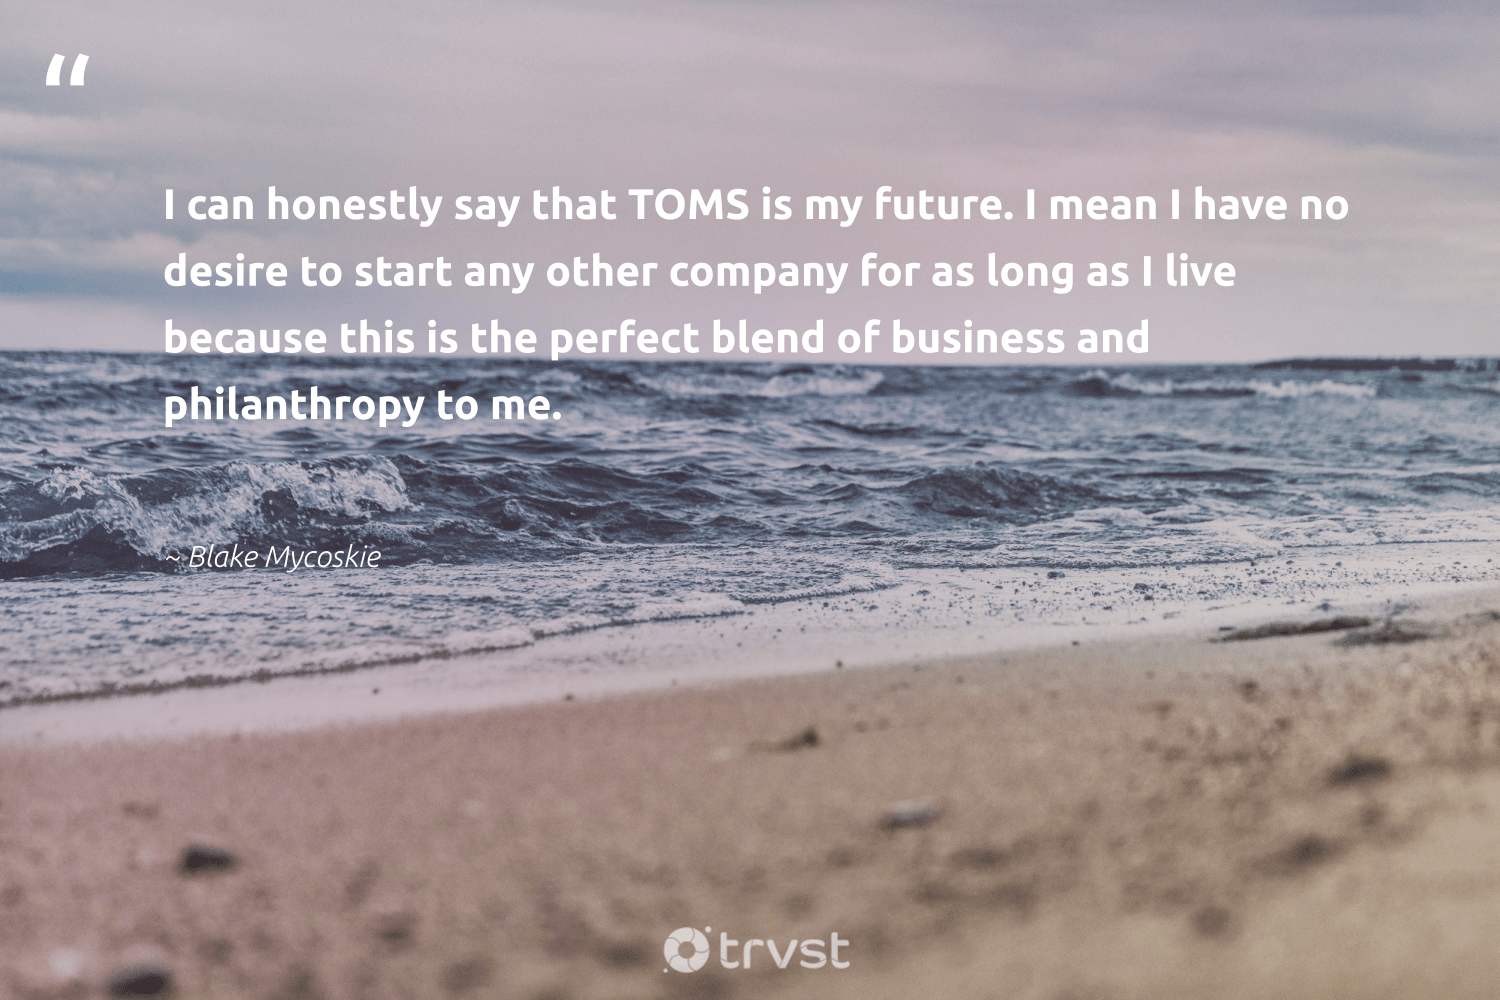 """I can honestly say that TOMS is my future. I mean I have no desire to start any other company for as long as I live because this is the perfect blend of business and philanthropy to me.""  - Blake Mycoskie #trvst #quotes #philanthropy #philanthropic #itscooltobekind #changemakers #dogood #togetherwecan #giveforthefuture #dotherightthing #changetheworld #dosomething"